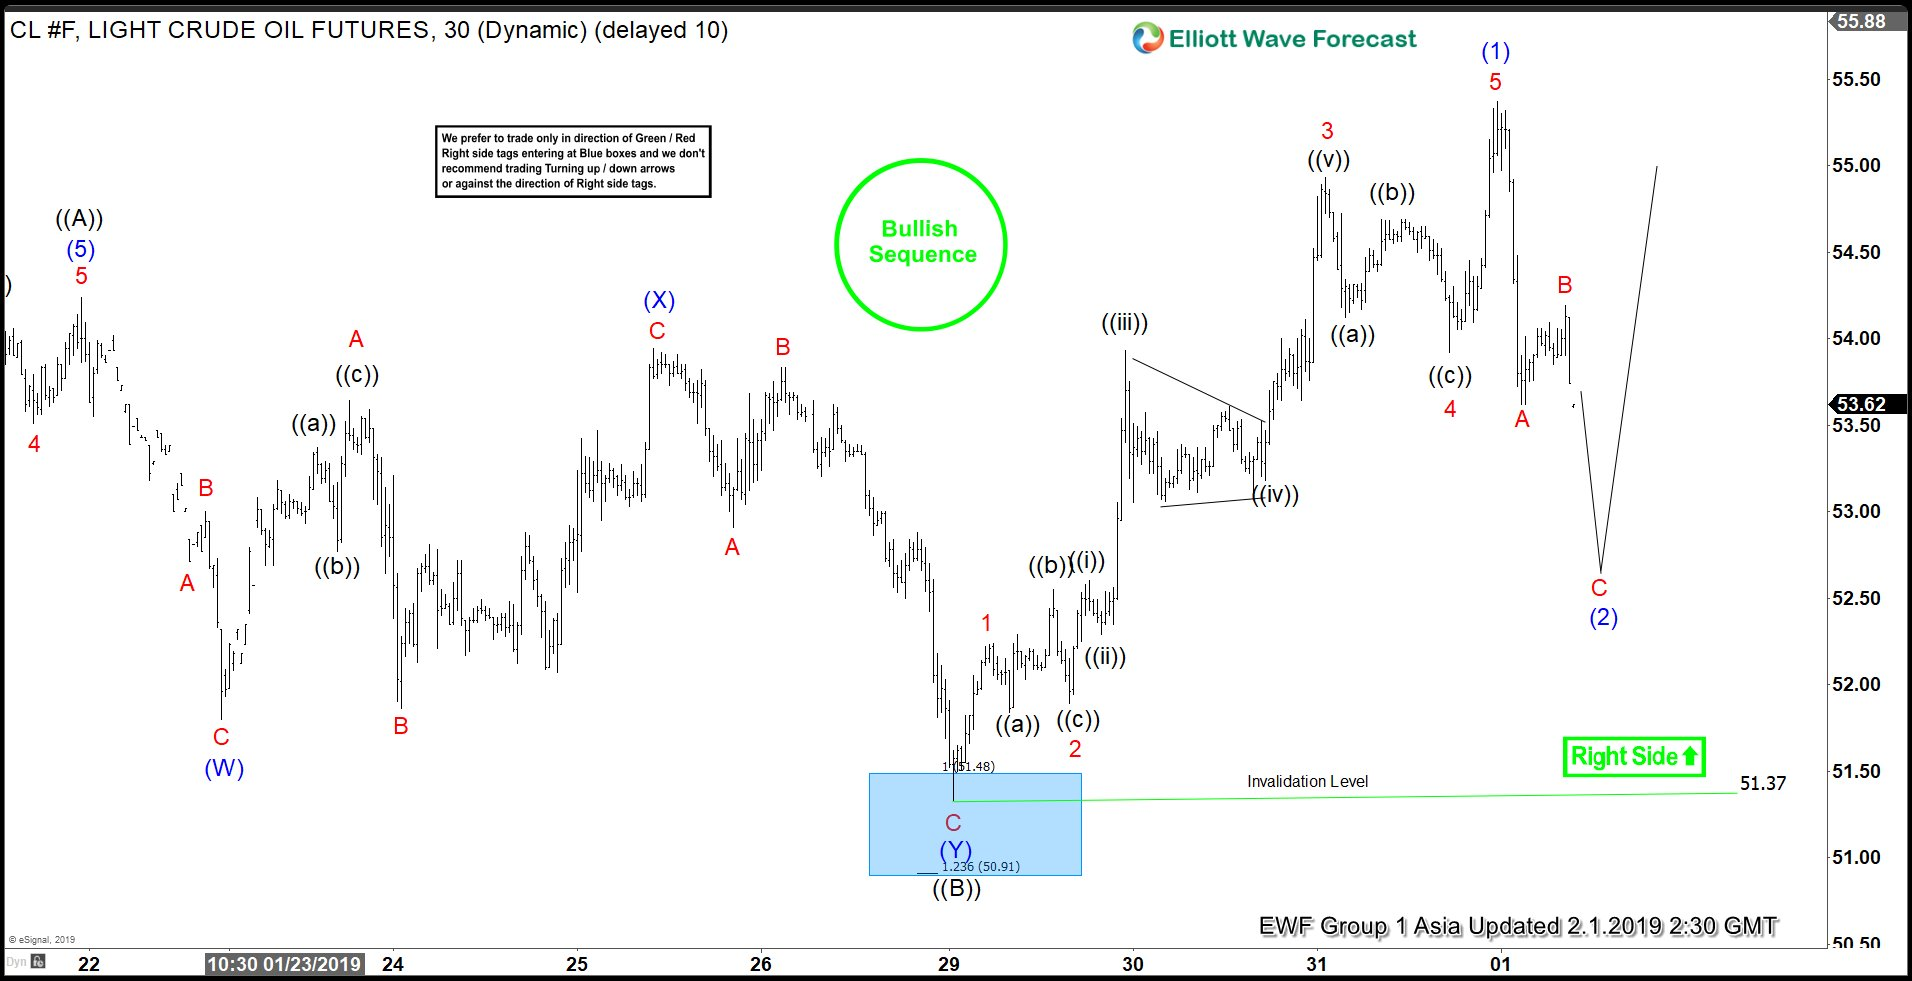 Elliott Wave looking for support in Oil